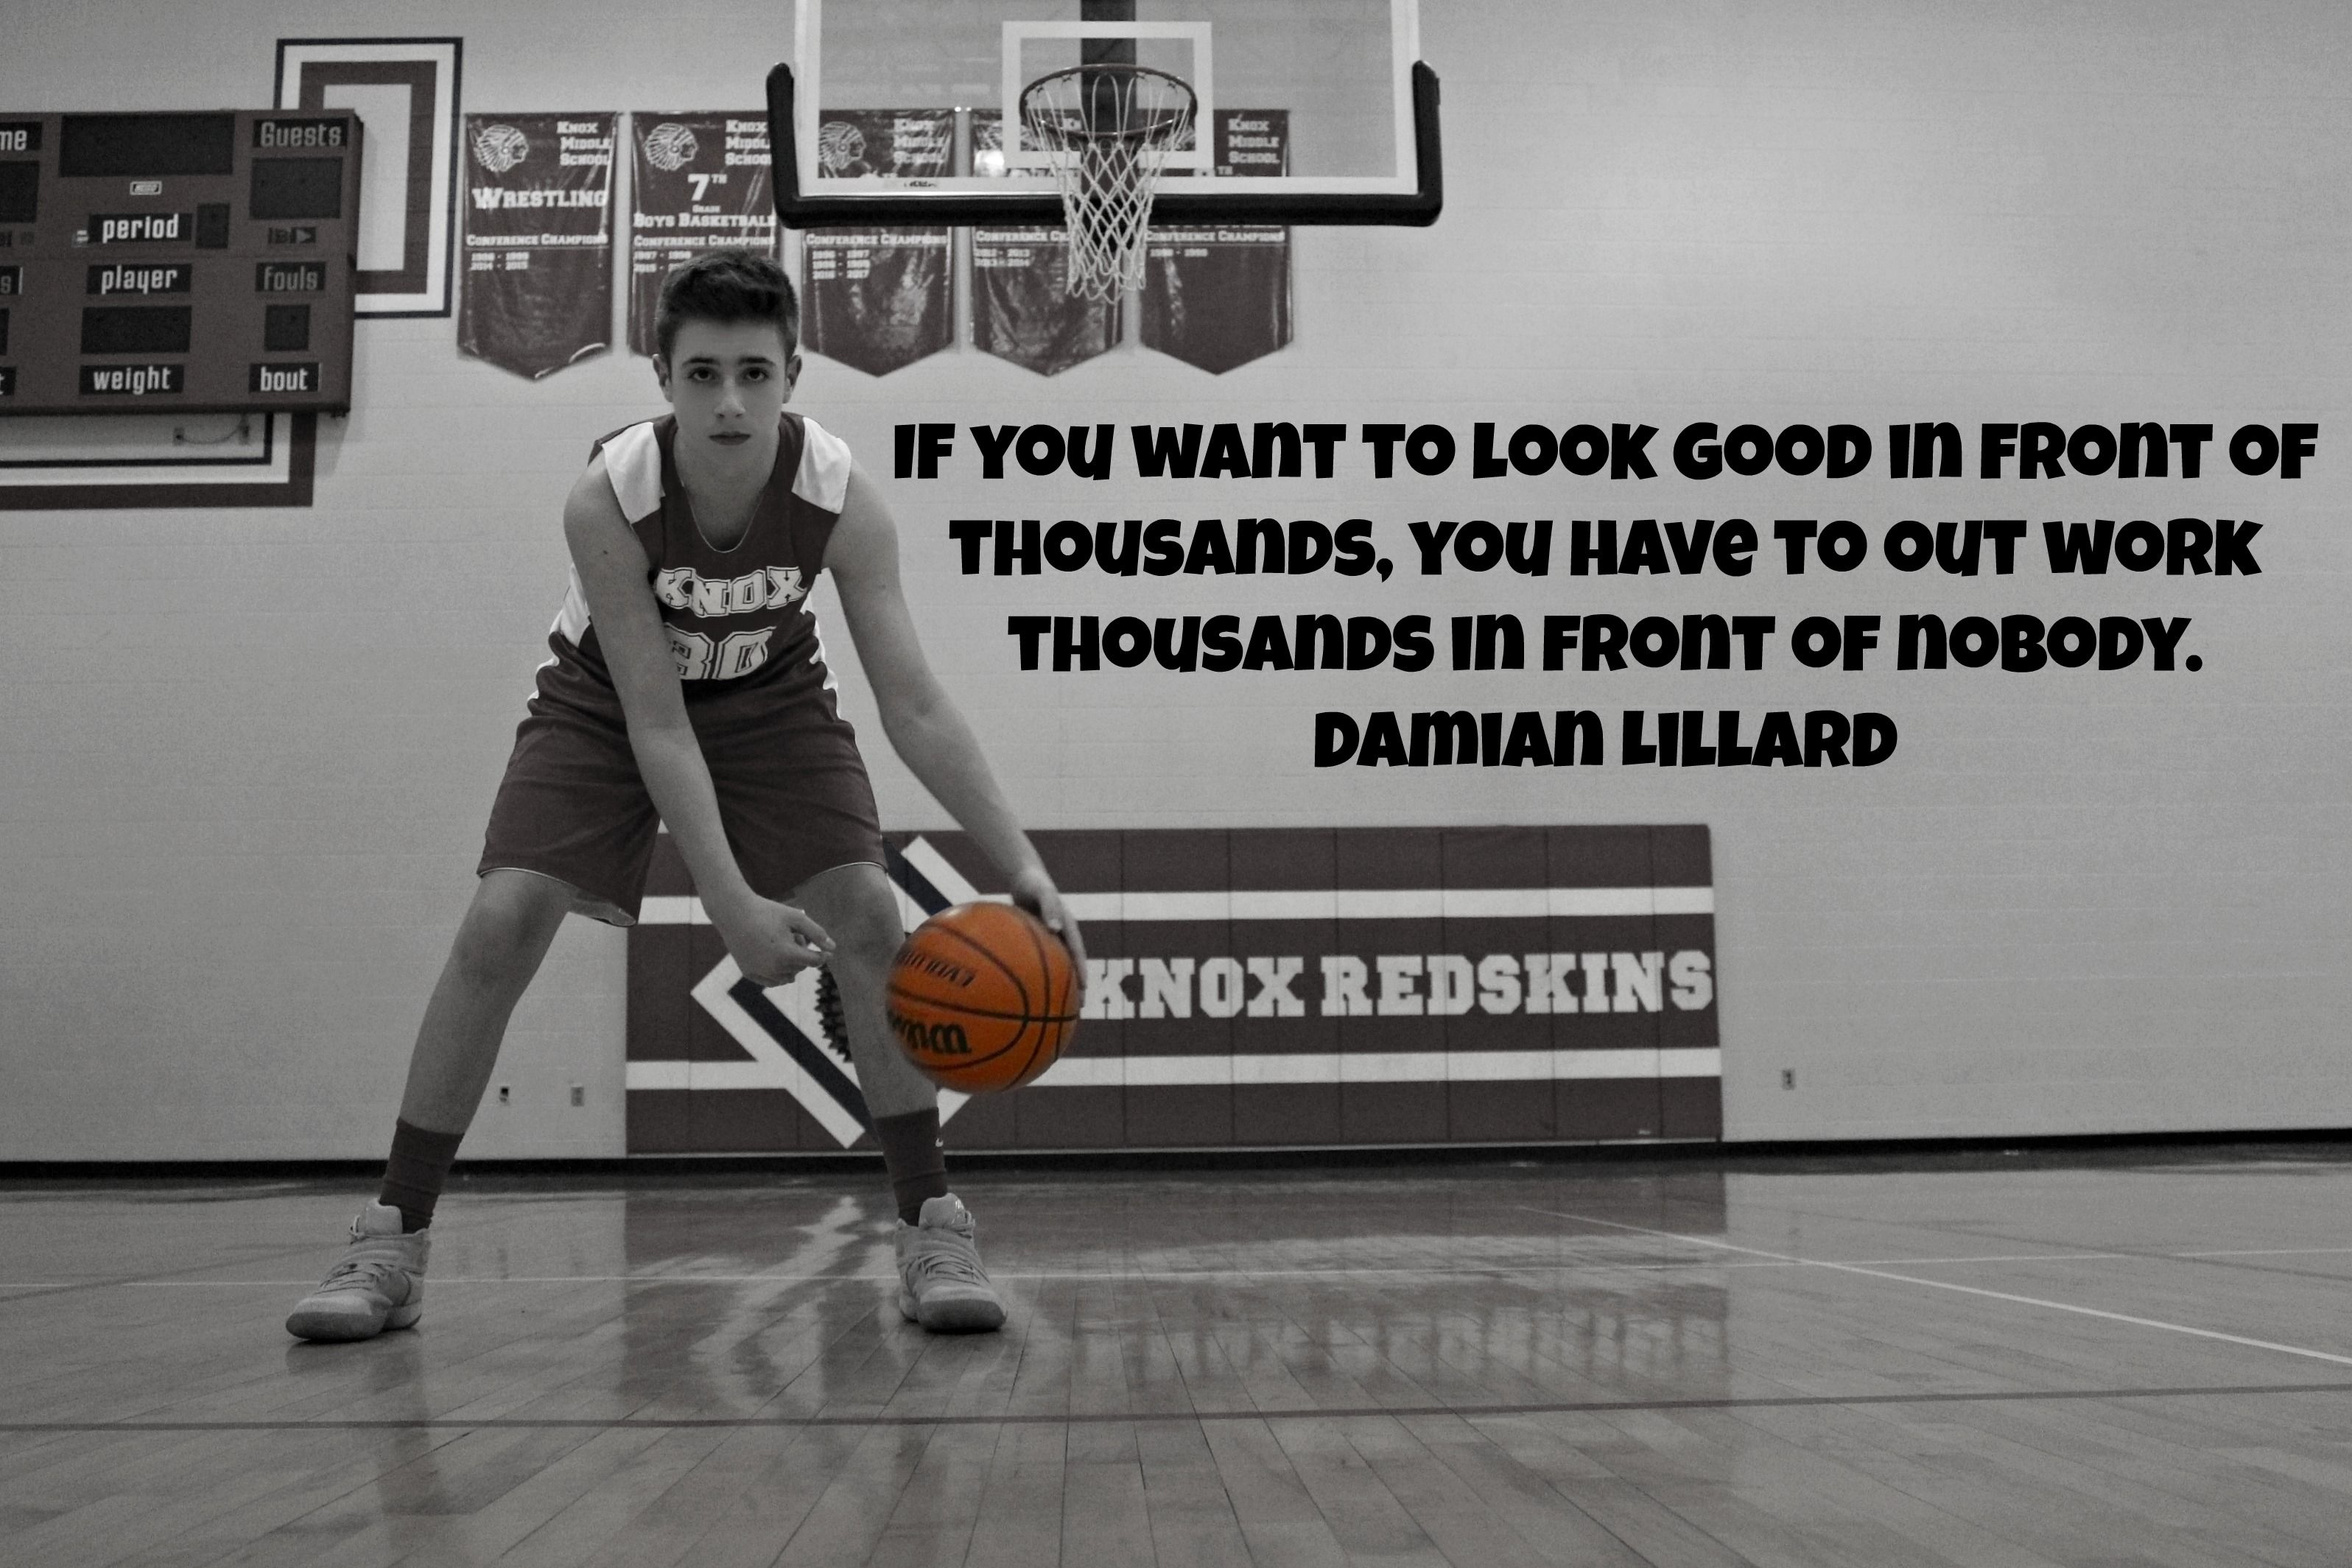 If You Want To Look Good In Front Of Thousands You Have To Out Work Thousands In Front Of Nobody Motivational Basketball Quotes Basketball Quotes Horse Quotes